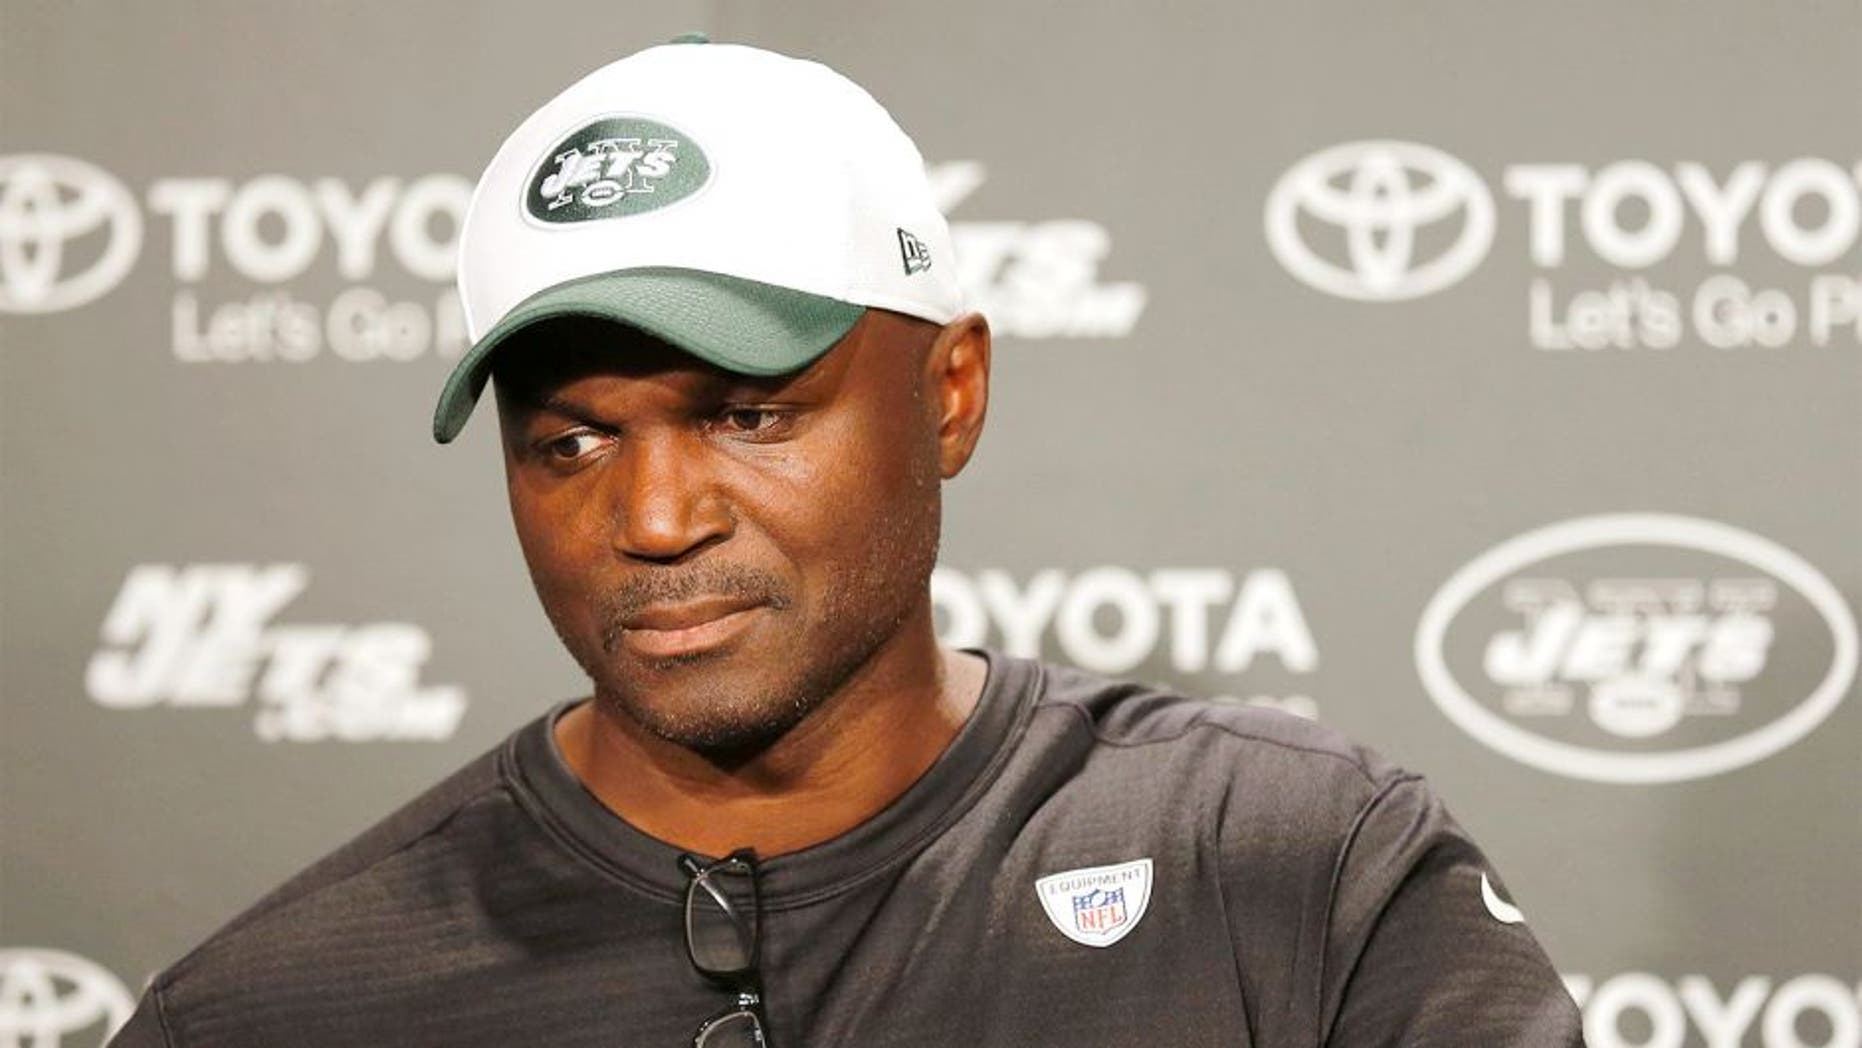 August 11, 2015; Florham Park, NJ, USA; New York Jets head coach Todd Bowles answers questions about Geno Smith (not pictured) after the New York Jets hold practice at the Atlantic Health Jets Training Center. Mandatory Credit: John Munson/THE STAR-LEDGER via USA TODAY Sports